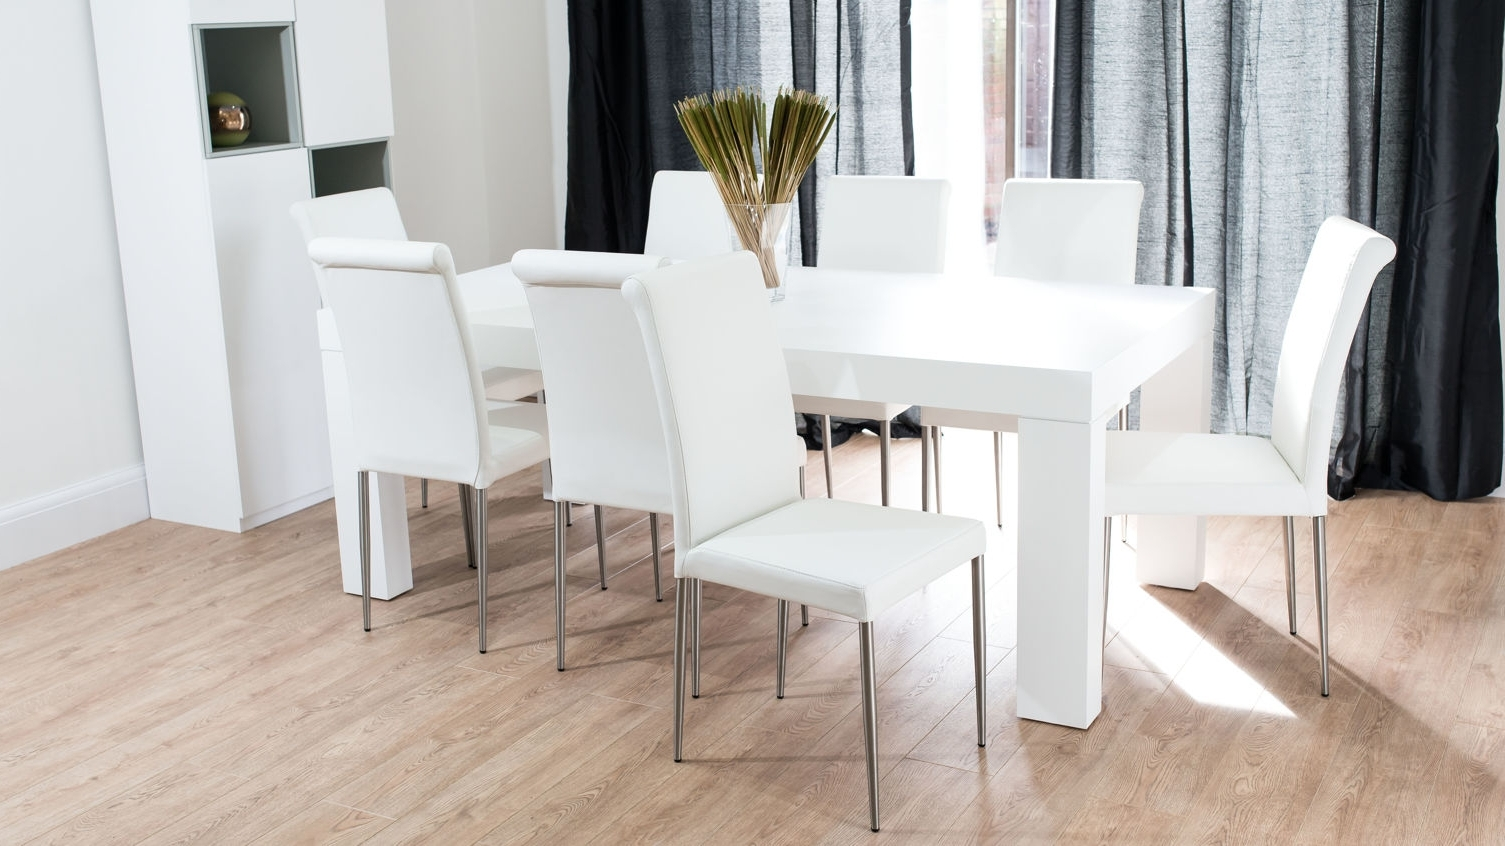 Well Known Dining Table Set White – Castrophotos Regarding Smartie Dining Tables And Chairs (View 21 of 25)